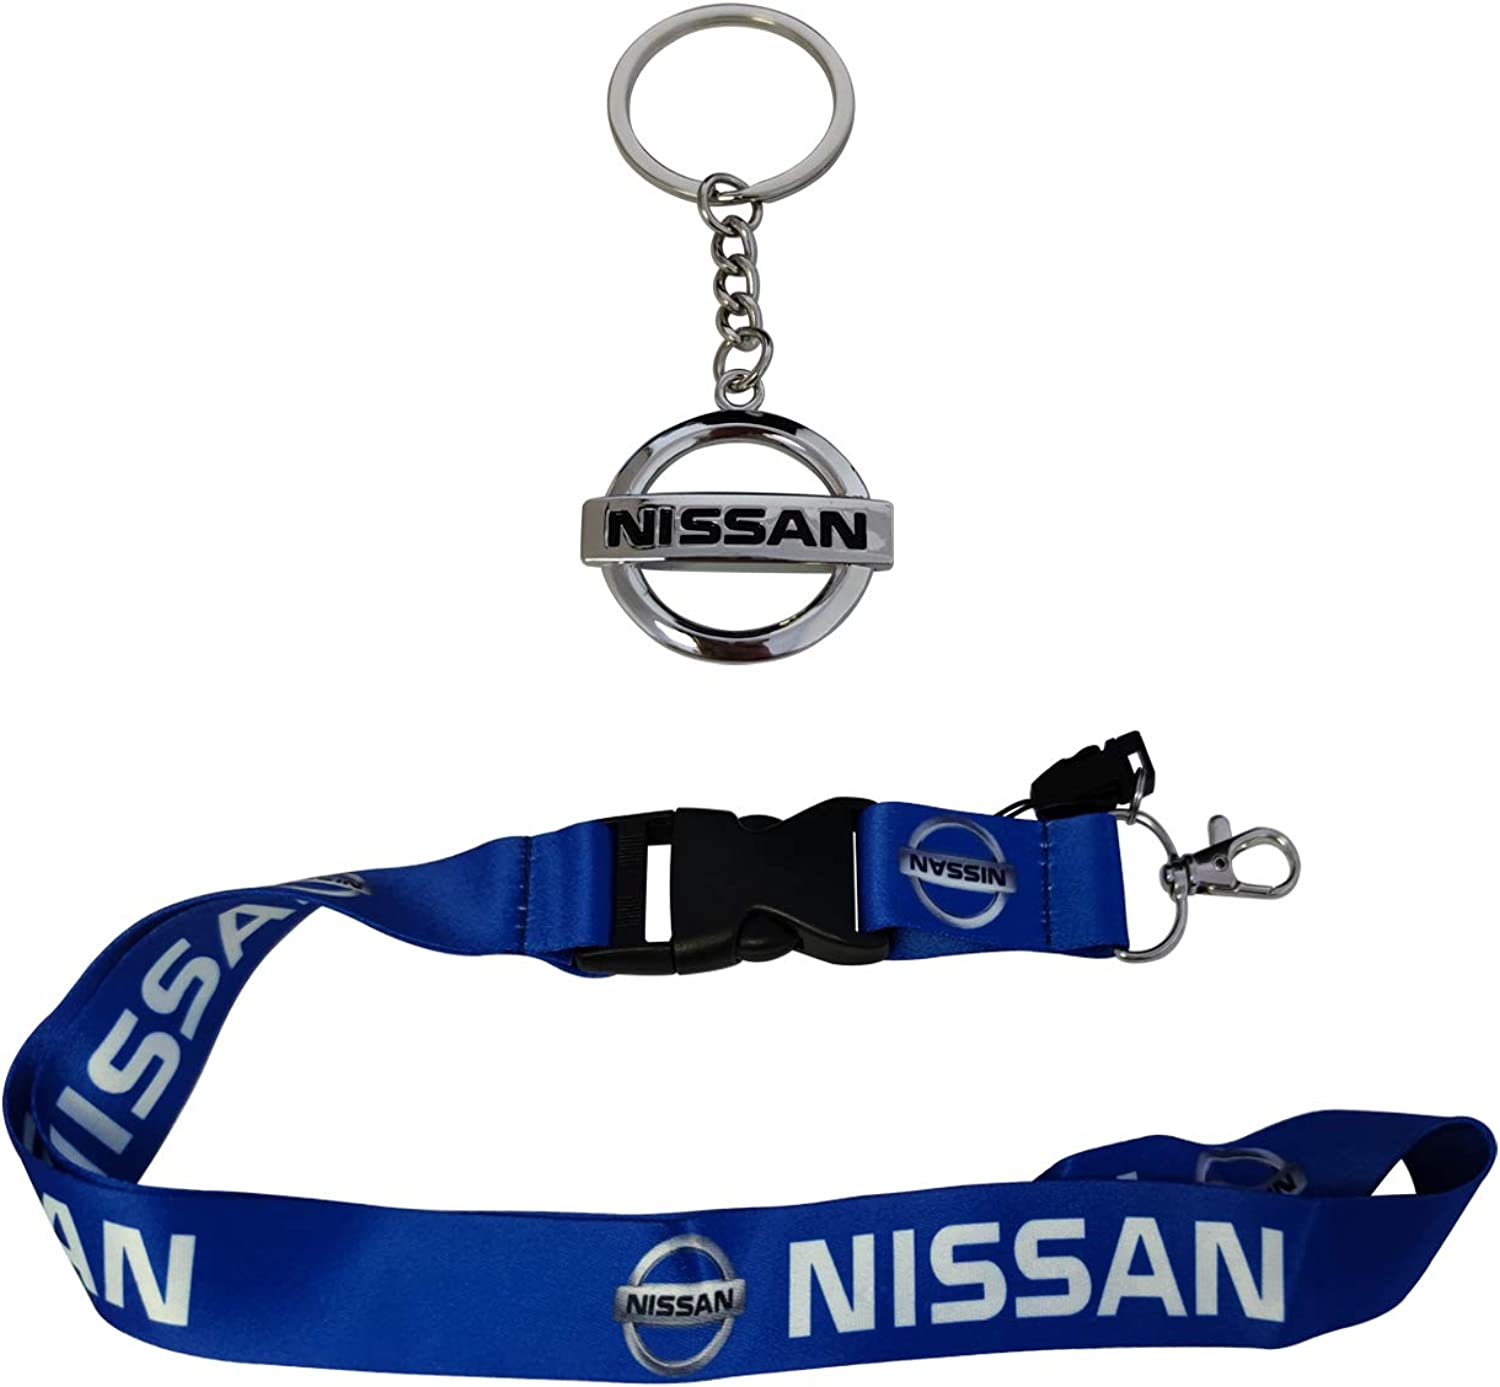 1pc Lanyard /& 1pc Metal Key Chain For Accessories Gift Fashion Car SUV Truck Motorsport Racing Man Women Fashion Clasp